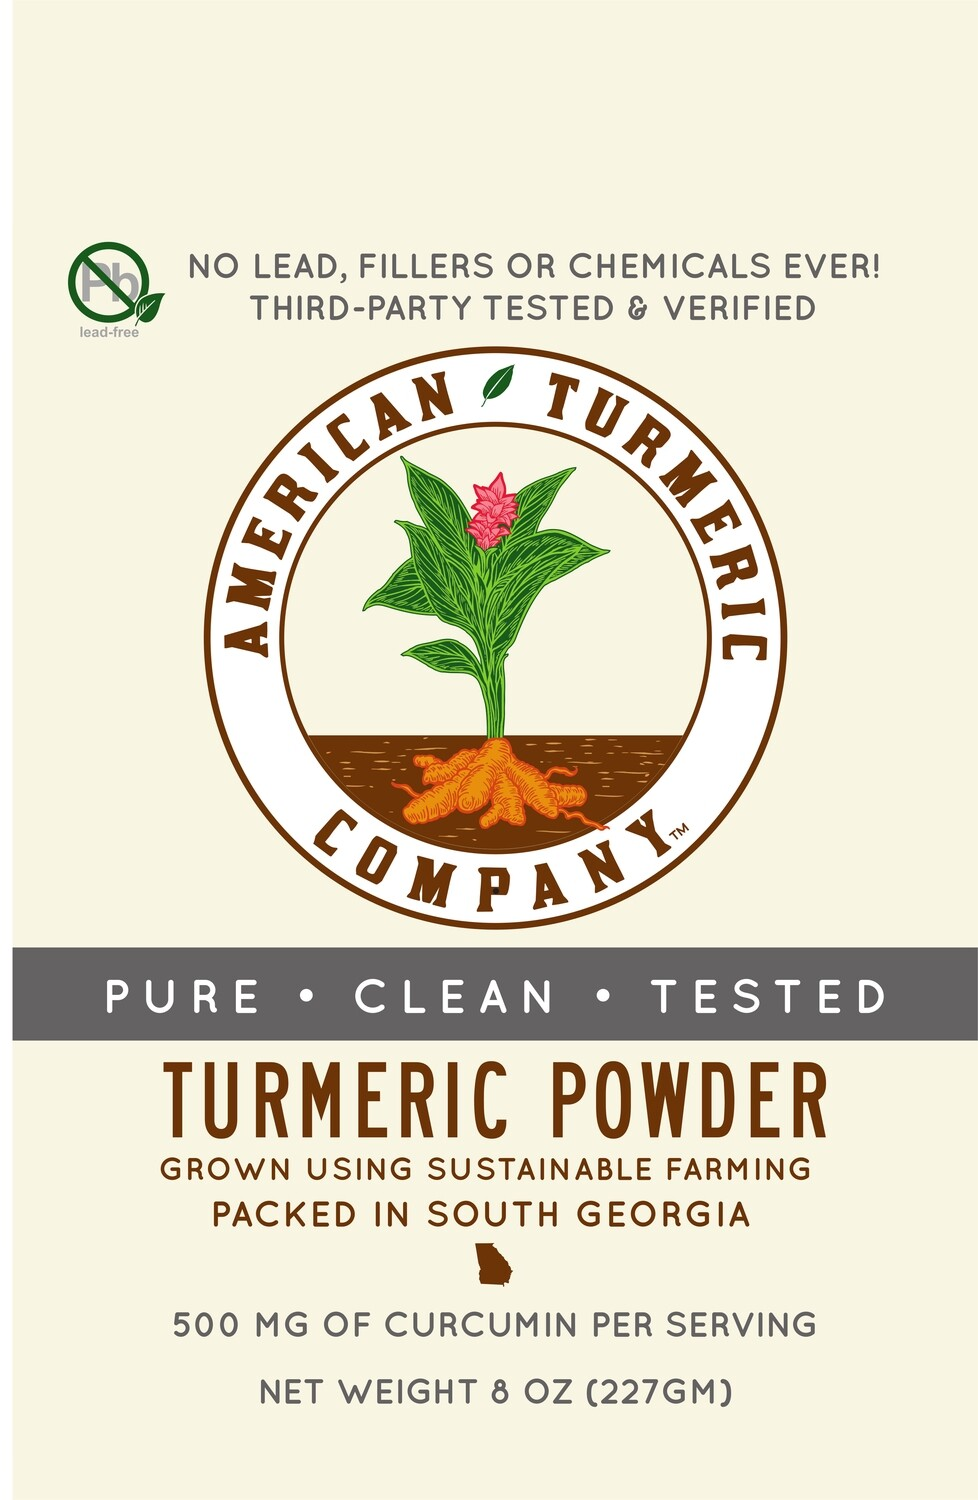 American Turmeric Powder - Certified Clean and No Lead - Lab Results Included - 1/2 pound.